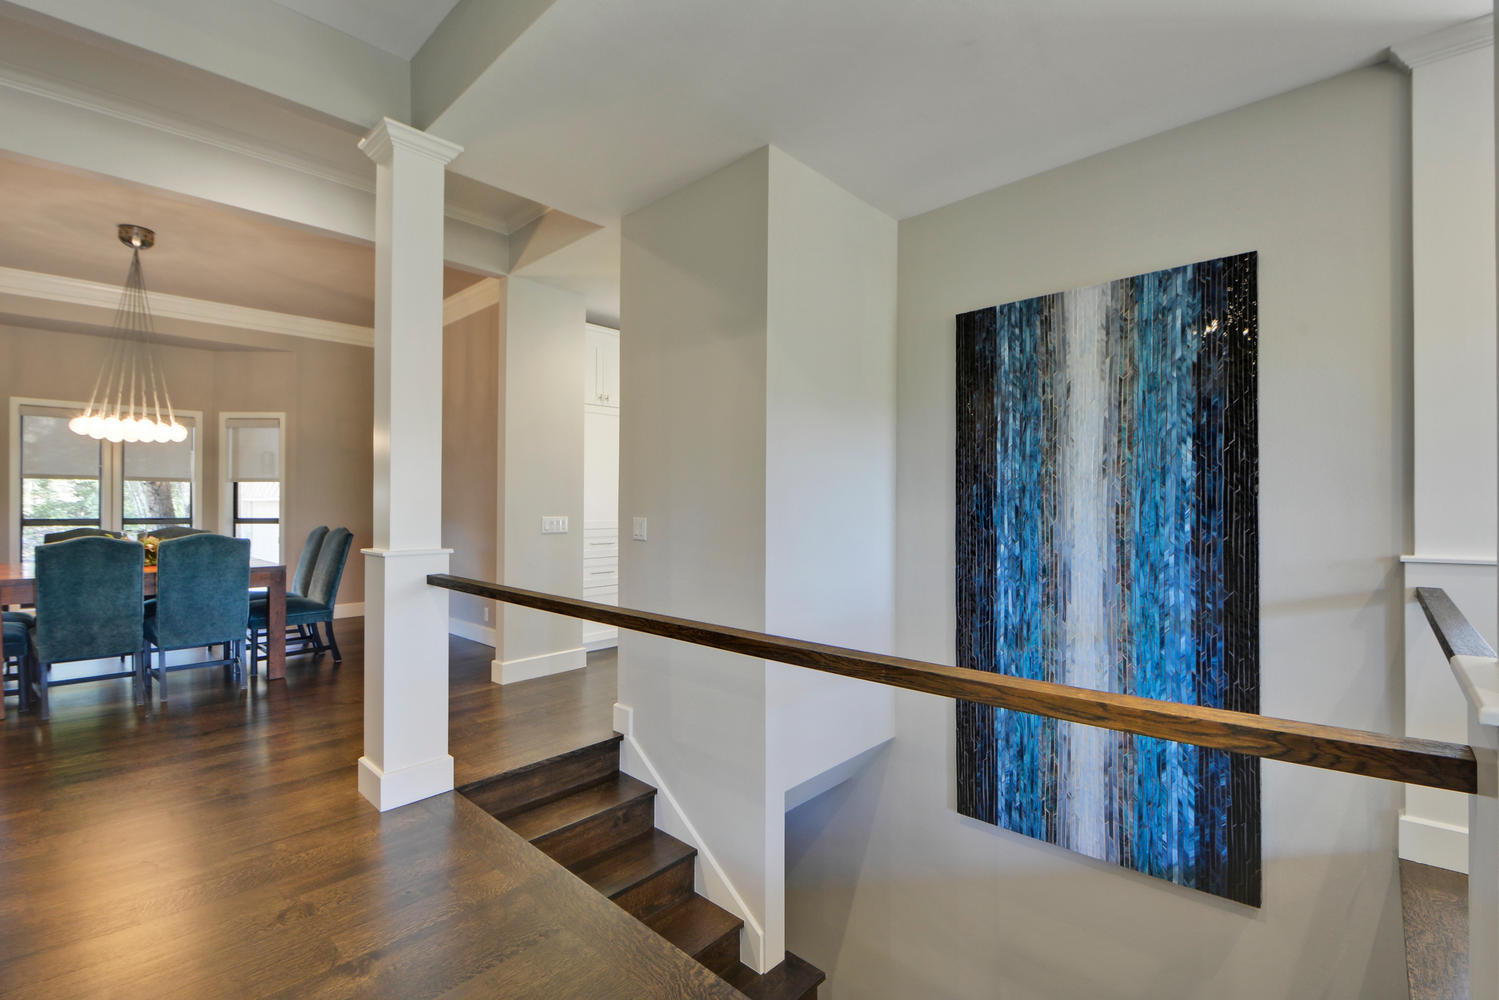 Stairwell art in transitional home